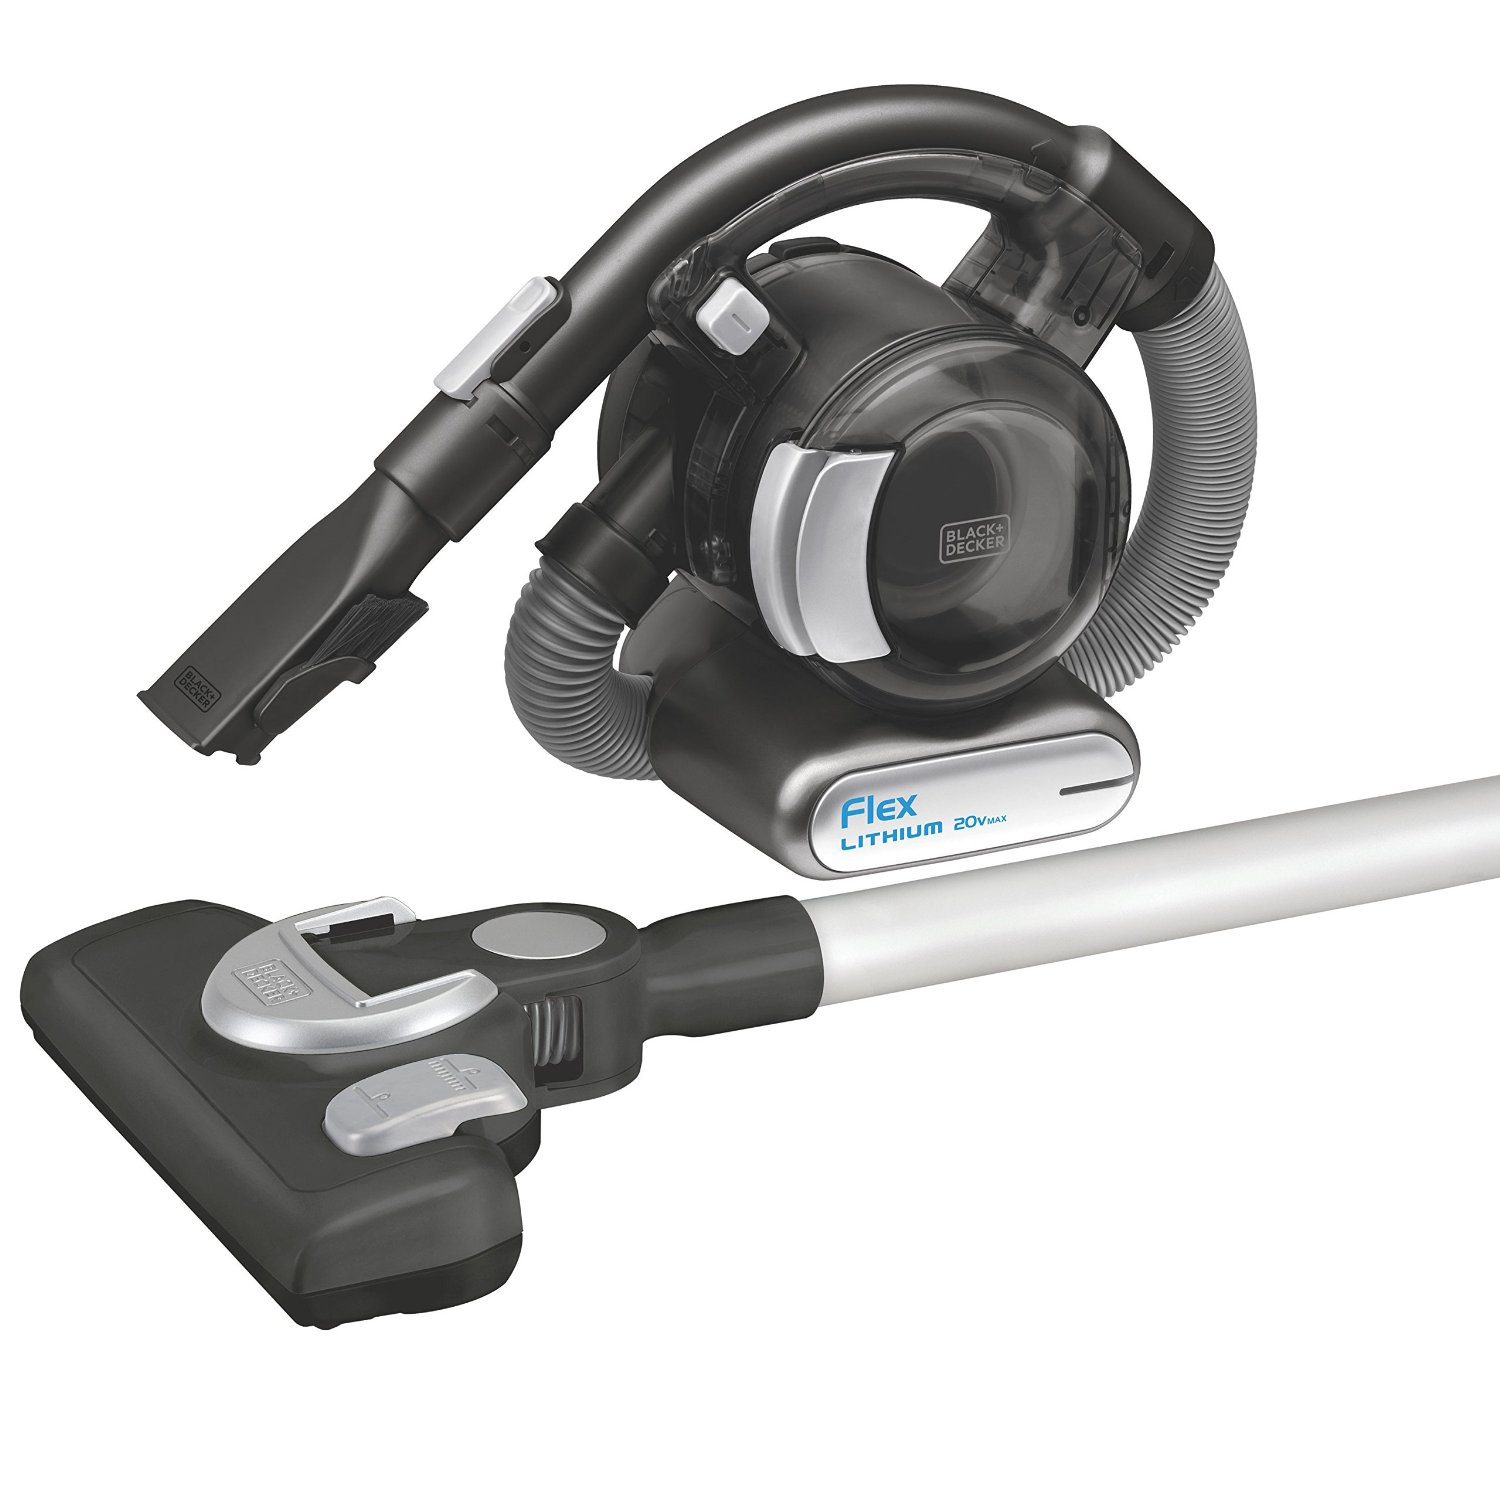 BLACK+DECKER MAX Lithium Flex Vacuum with Stick Vacuum Floor Head and Pet Hair Brush